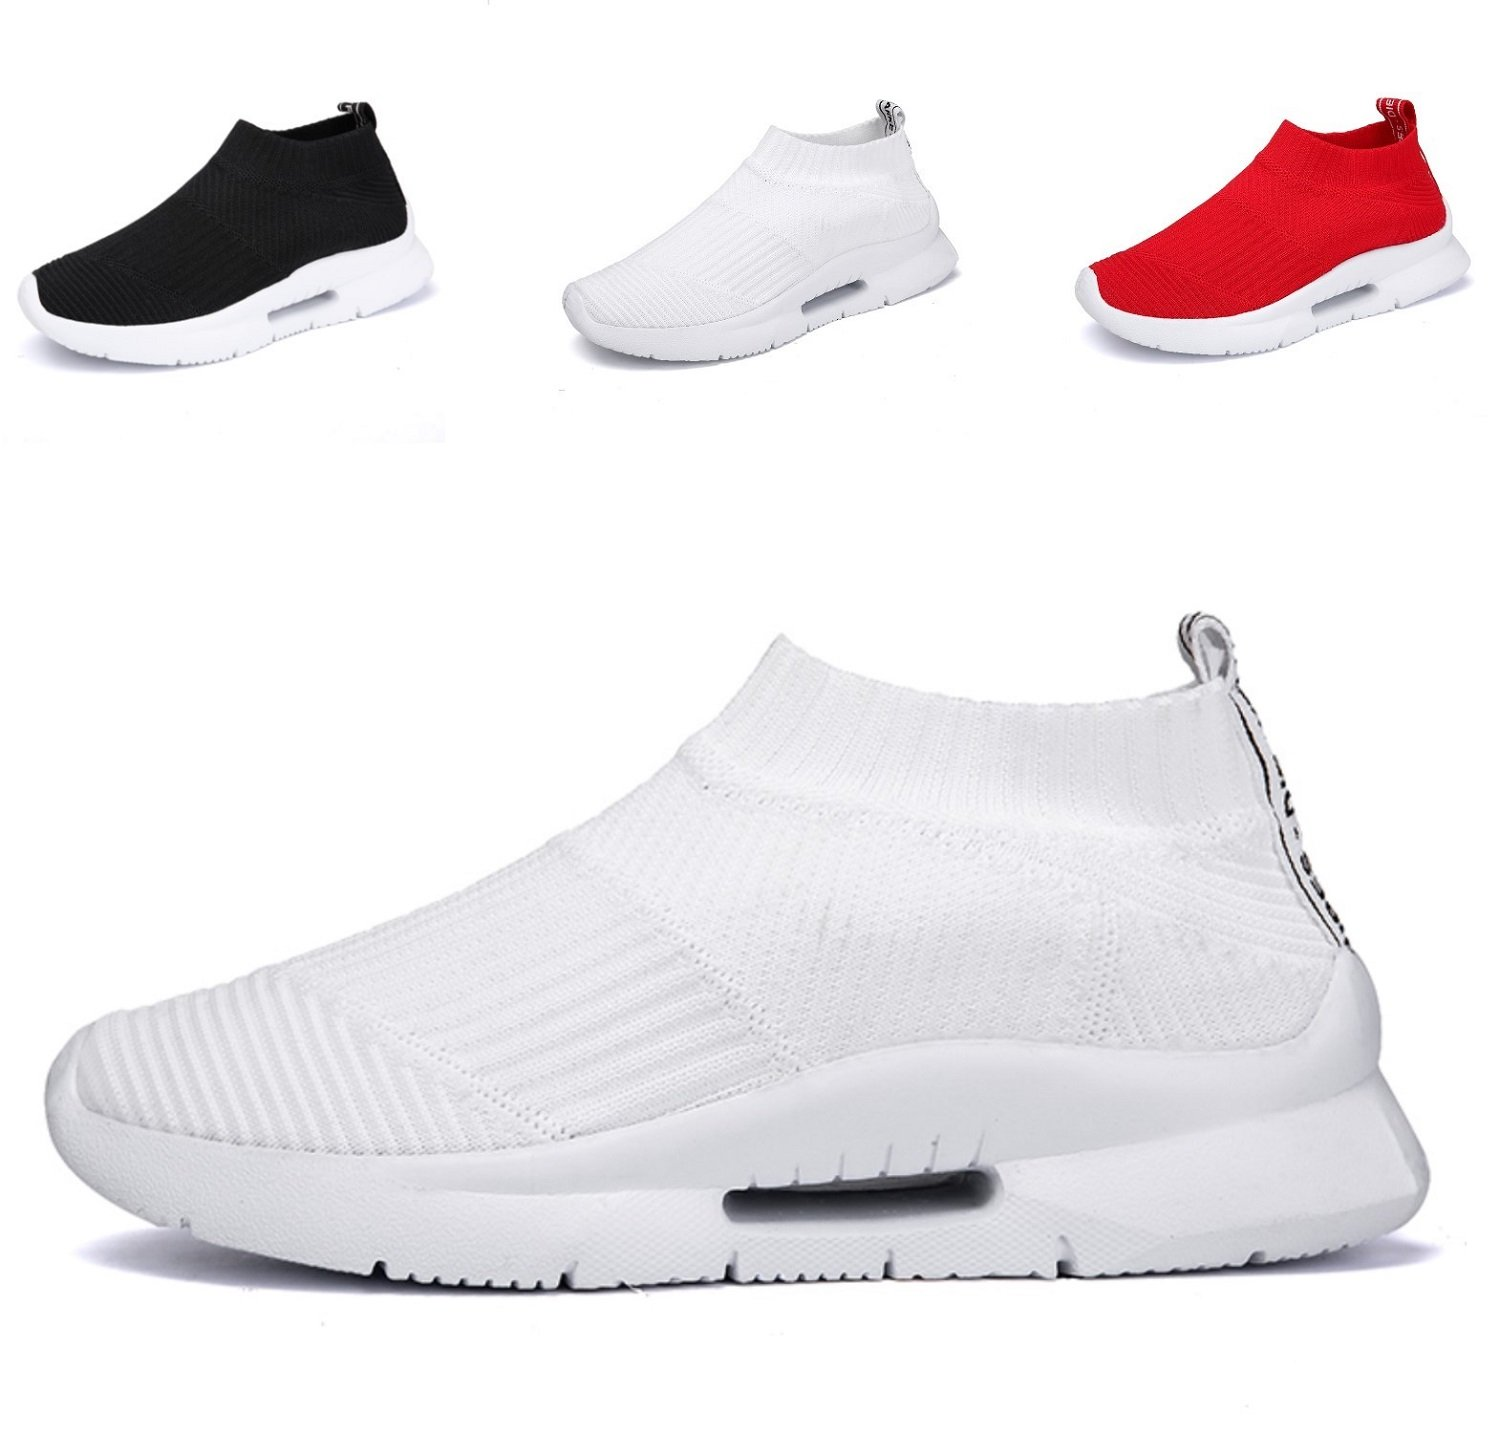 TQGOLD Kids Breathable Knit Casual Sneaker Cute Athletic Slip-On Walking Running Shoes Boys/Girls Cushion(Size 36, White)